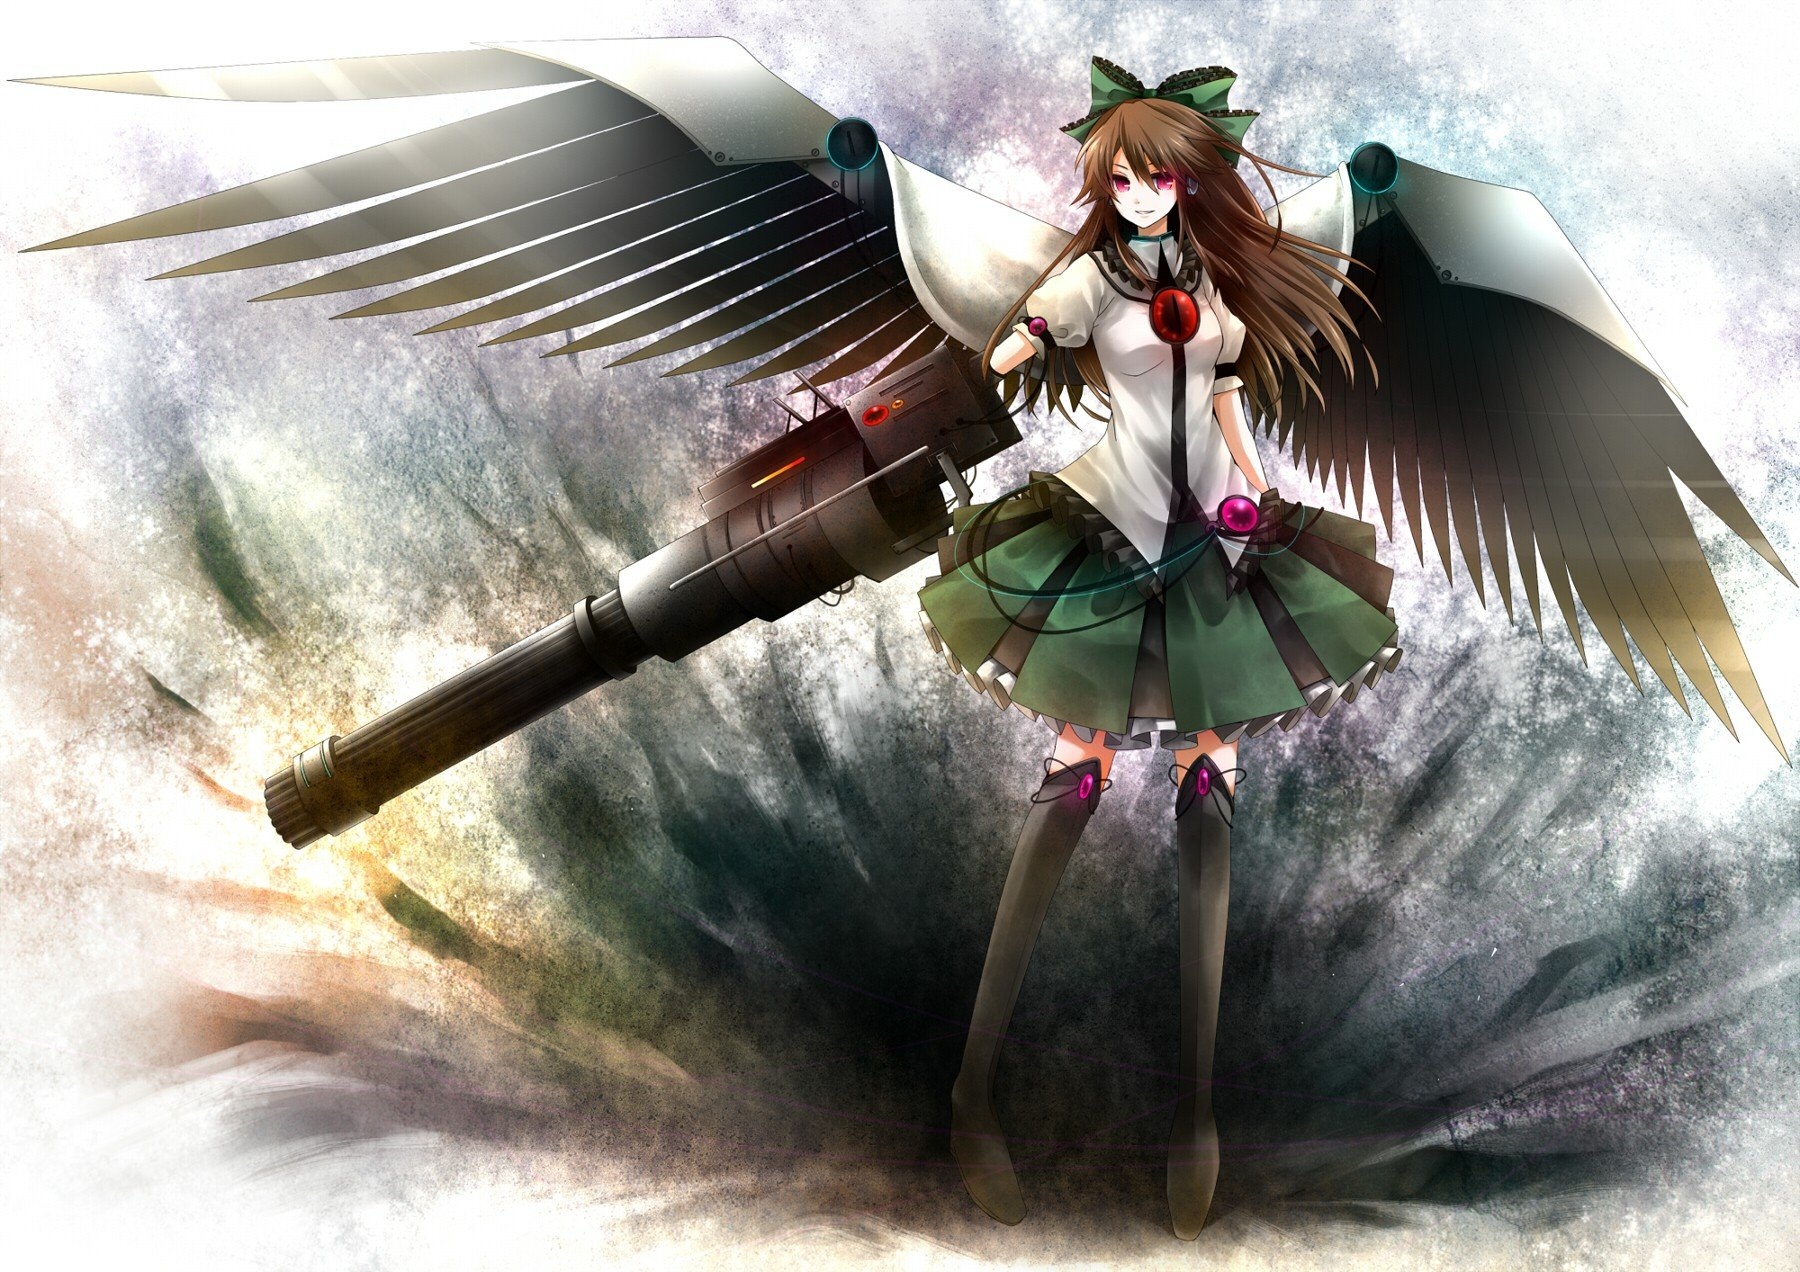 brunettes video games Touhou wings skirts long hair weapons red eyes thigh highs cannons bows capes Reiuji Utsuho anime girls third eye mechanical wings hair ornaments dark wings